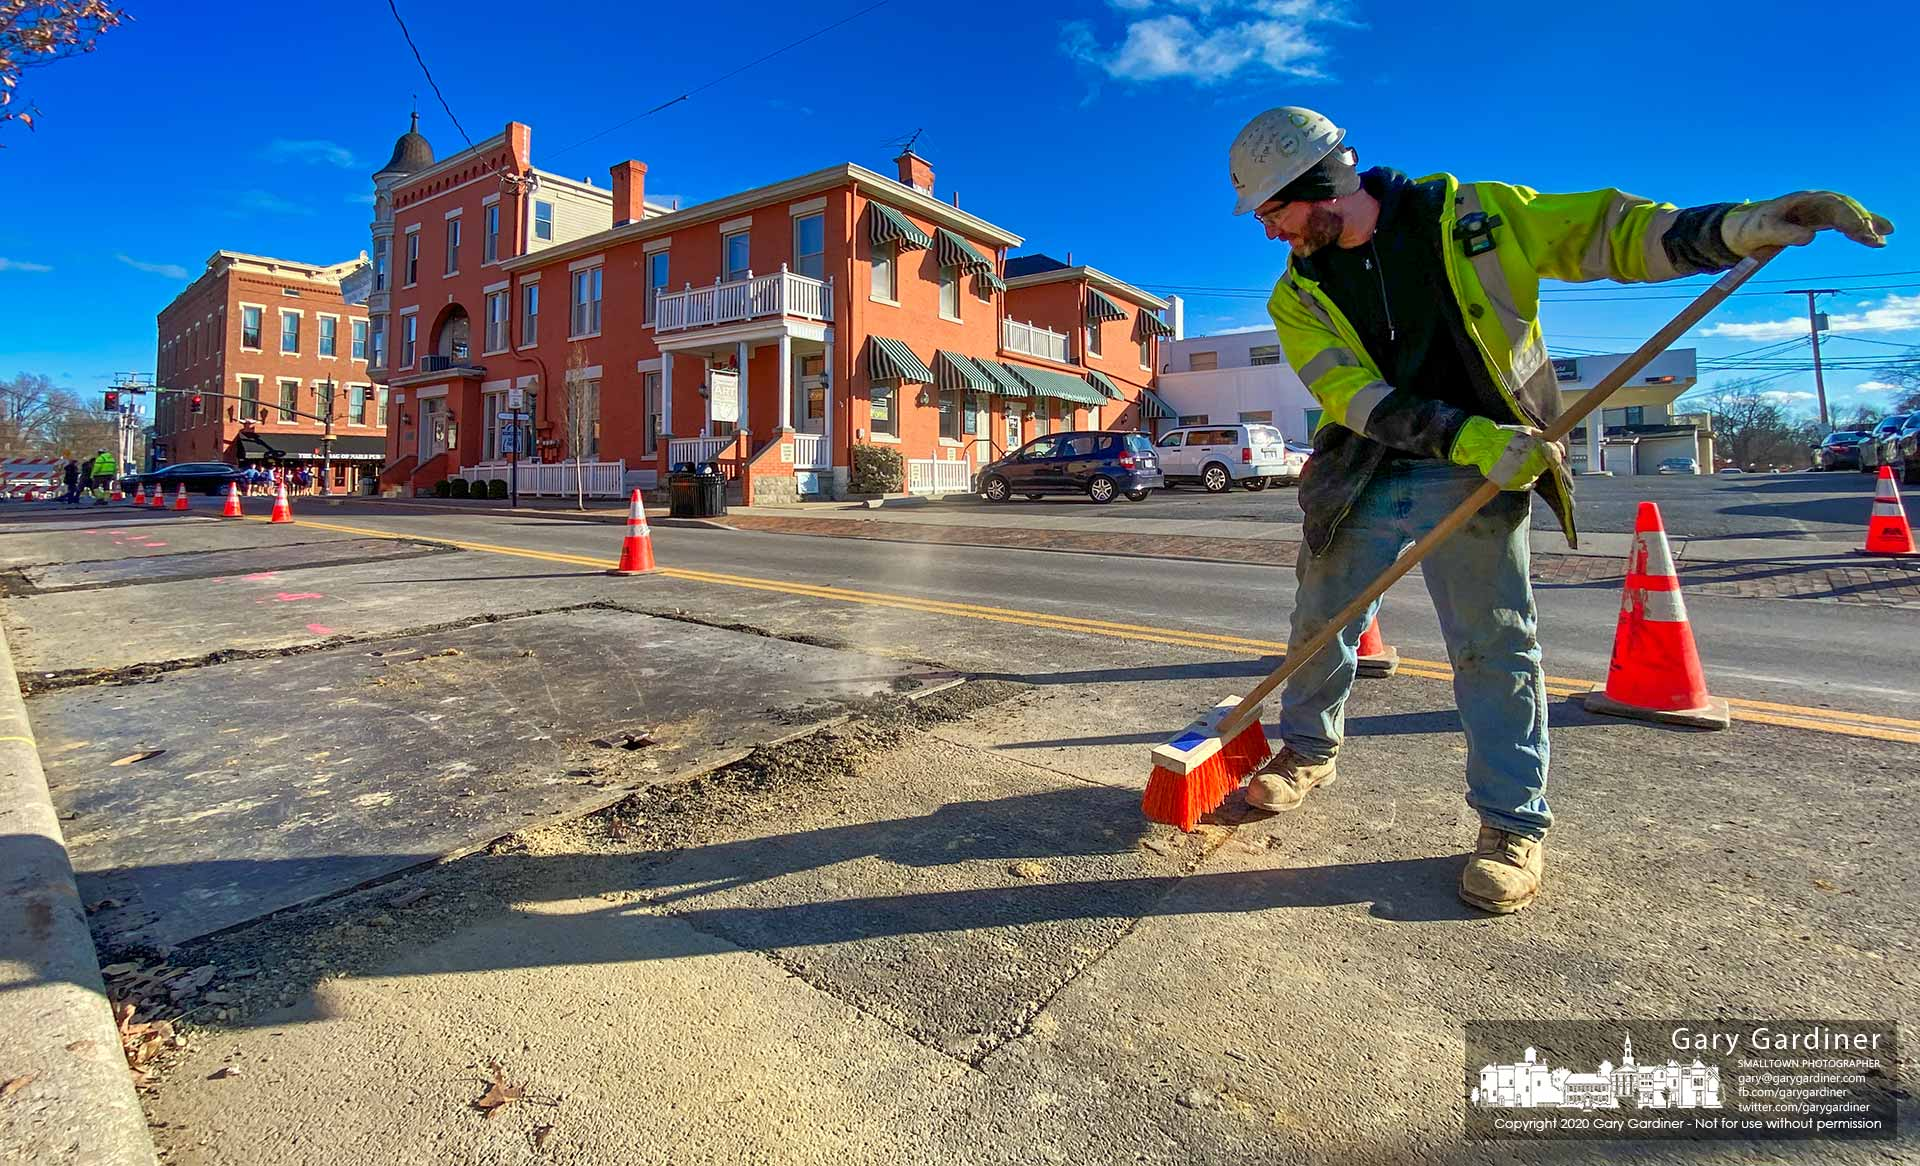 A Miller Pipeline worker sweeps away debris after covering a section of West Main where the company bored a pipeline for Columbia Gas to install new services to the Holmes Hotel, in background, and its businesses in Uptown Westerville. My Final Photo for Jan. 8, 2020.